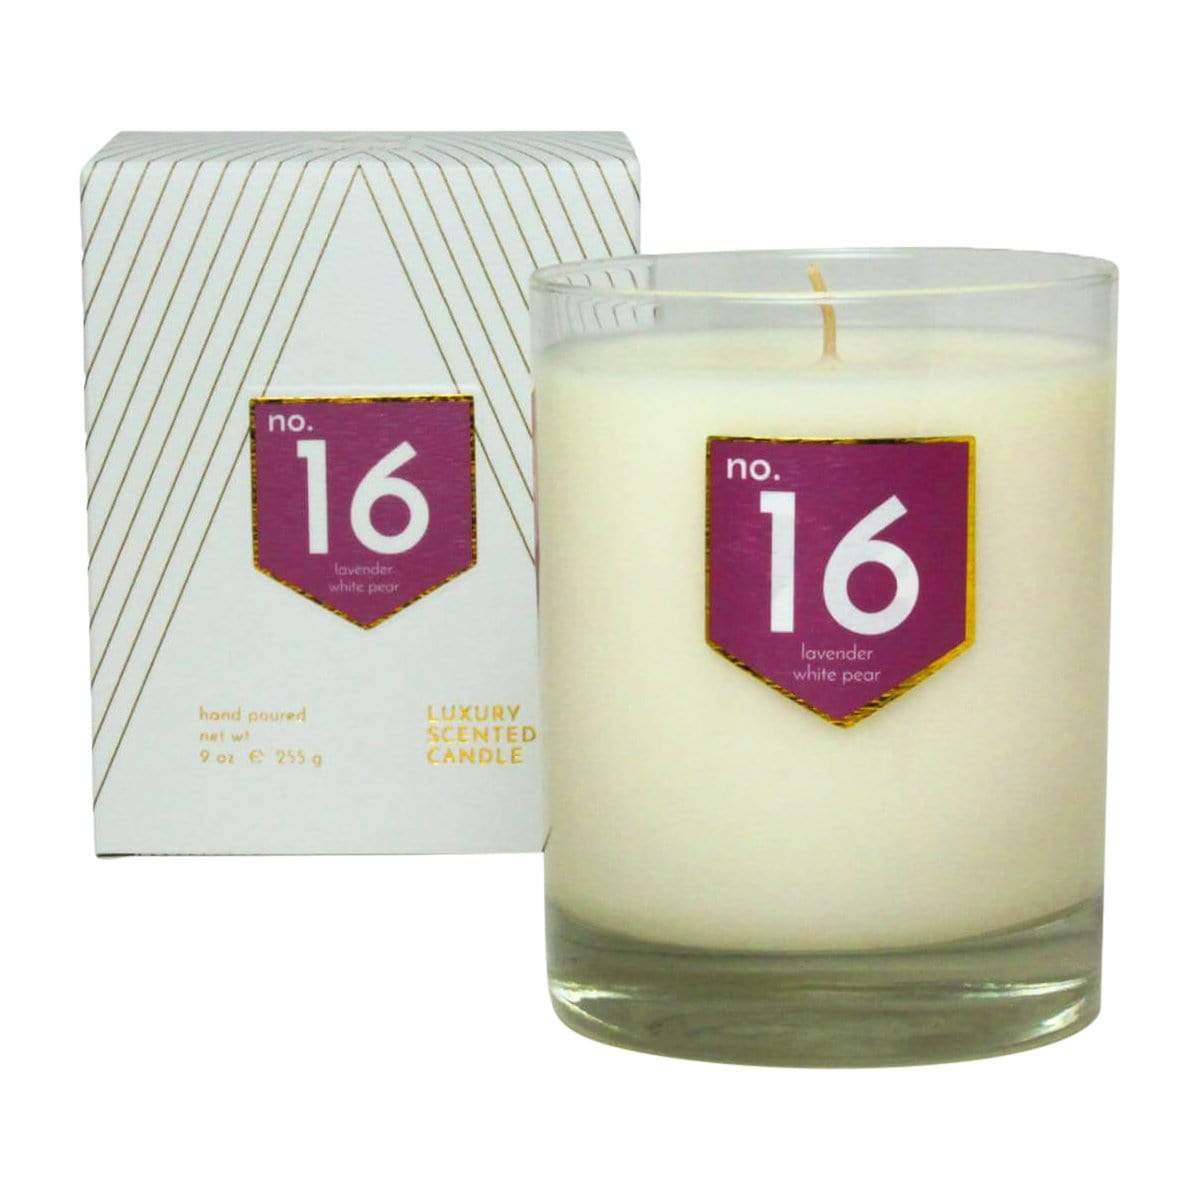 ACDC Candle Co Candles & Diffusers No. 16 Lavender White Pear Scented Soy Candle